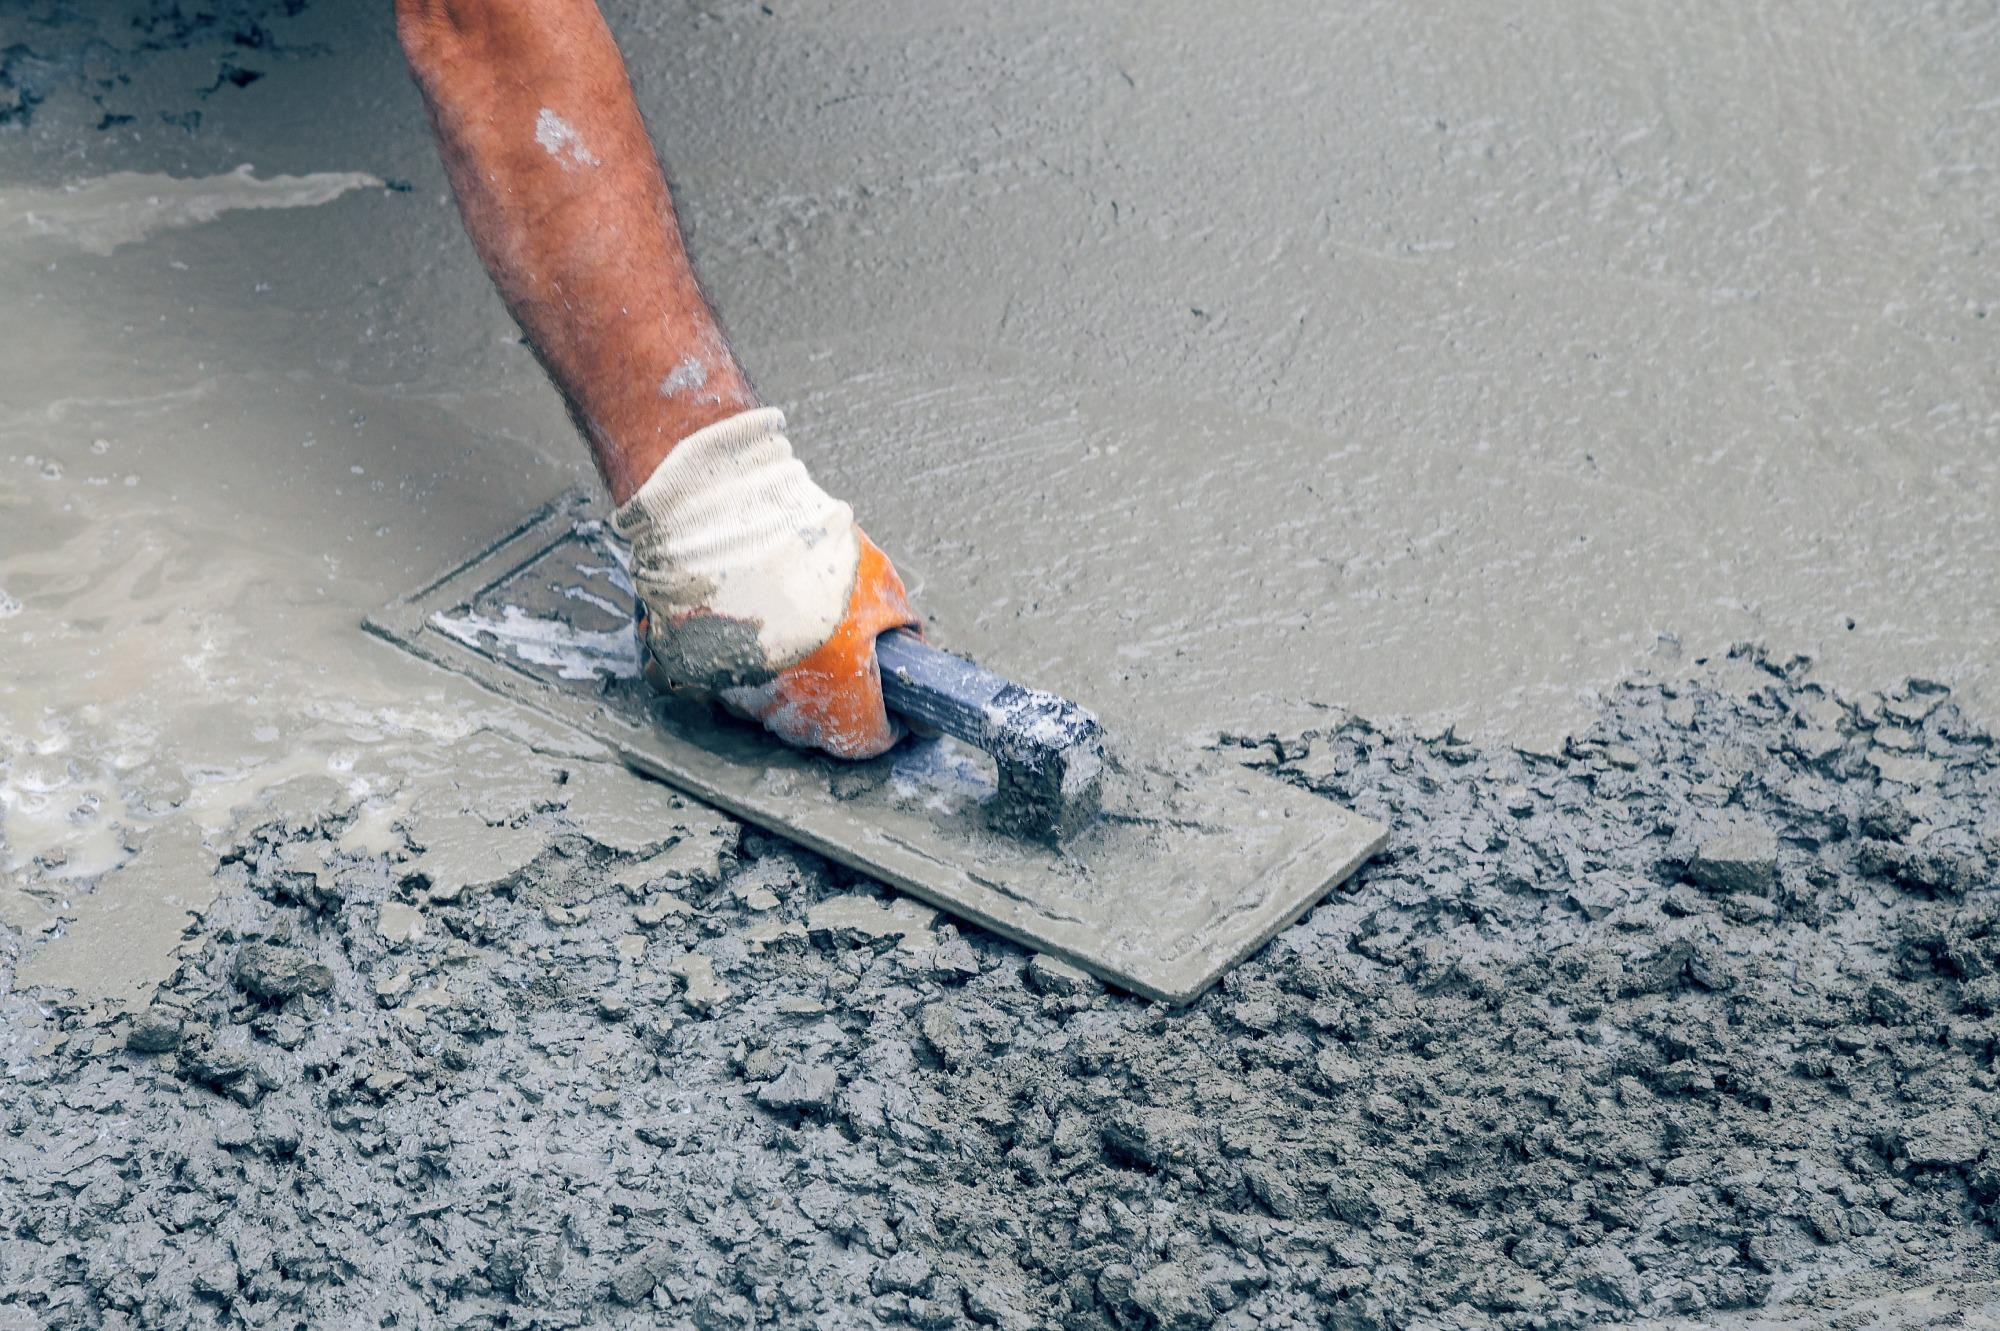 Researchers Develop Ultra-Resistant and Self-Repairing Concrete Materials.